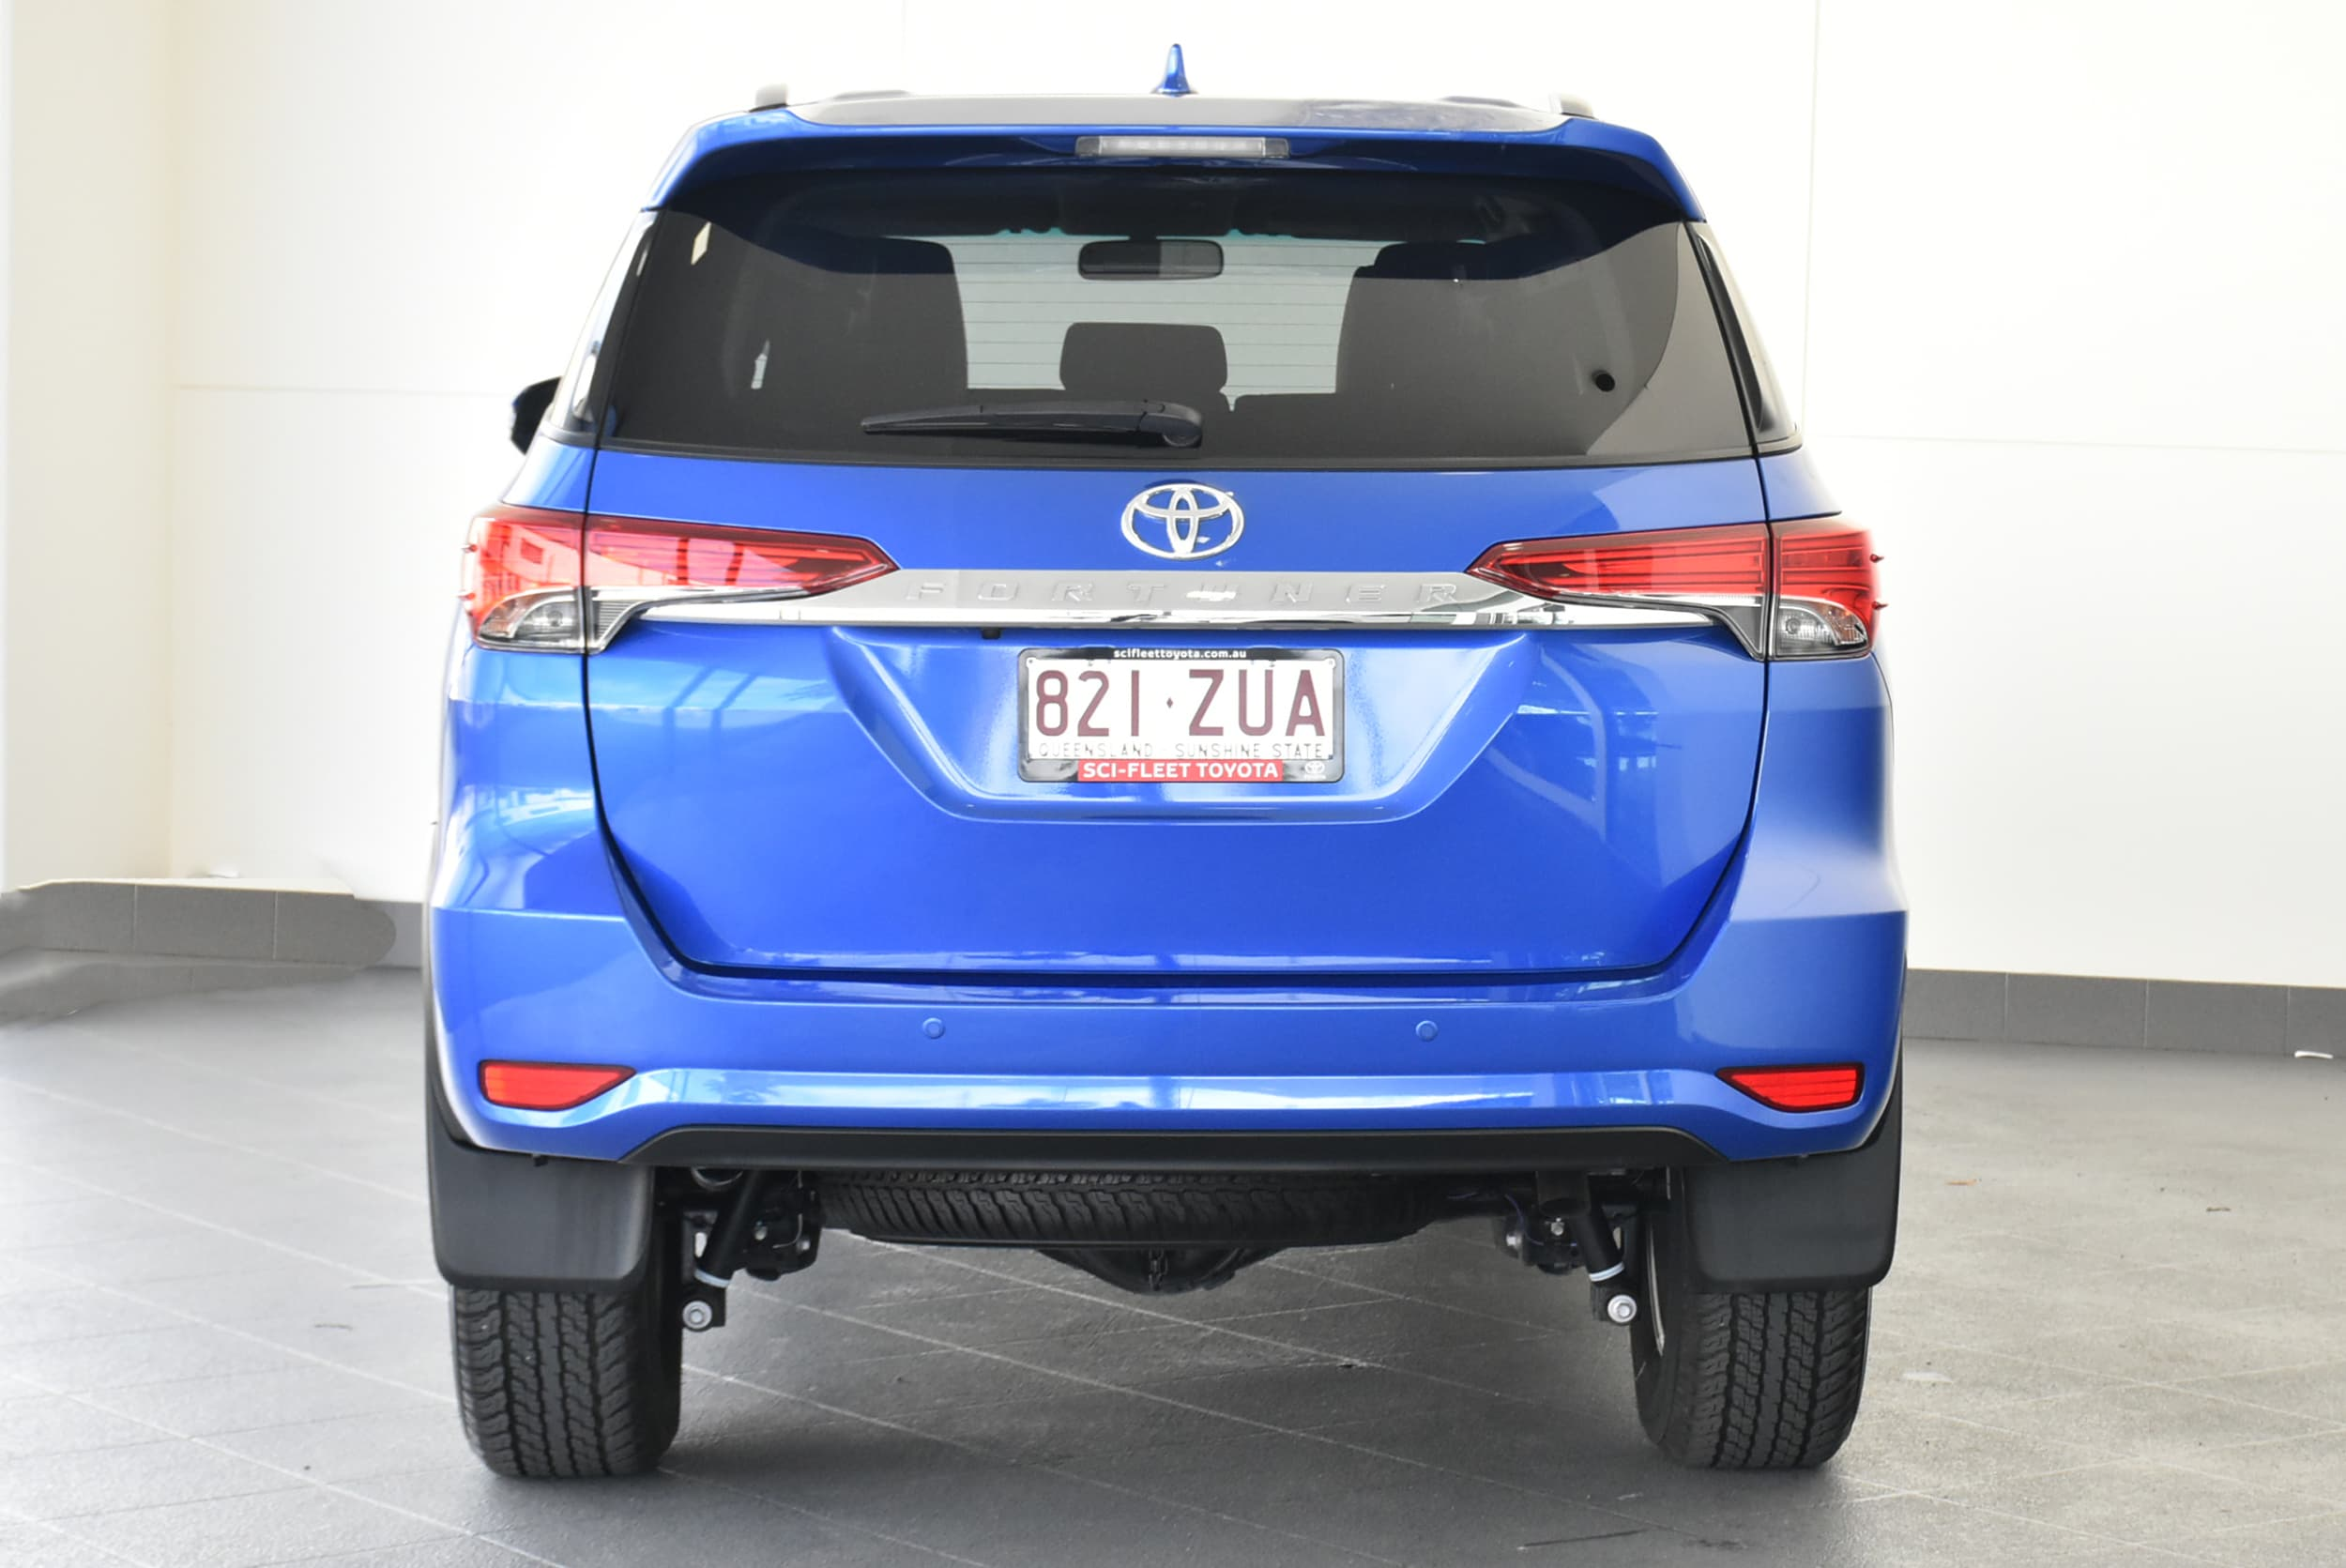 2019 Toyota Fortuner GXL Auto 4x4 - image 6